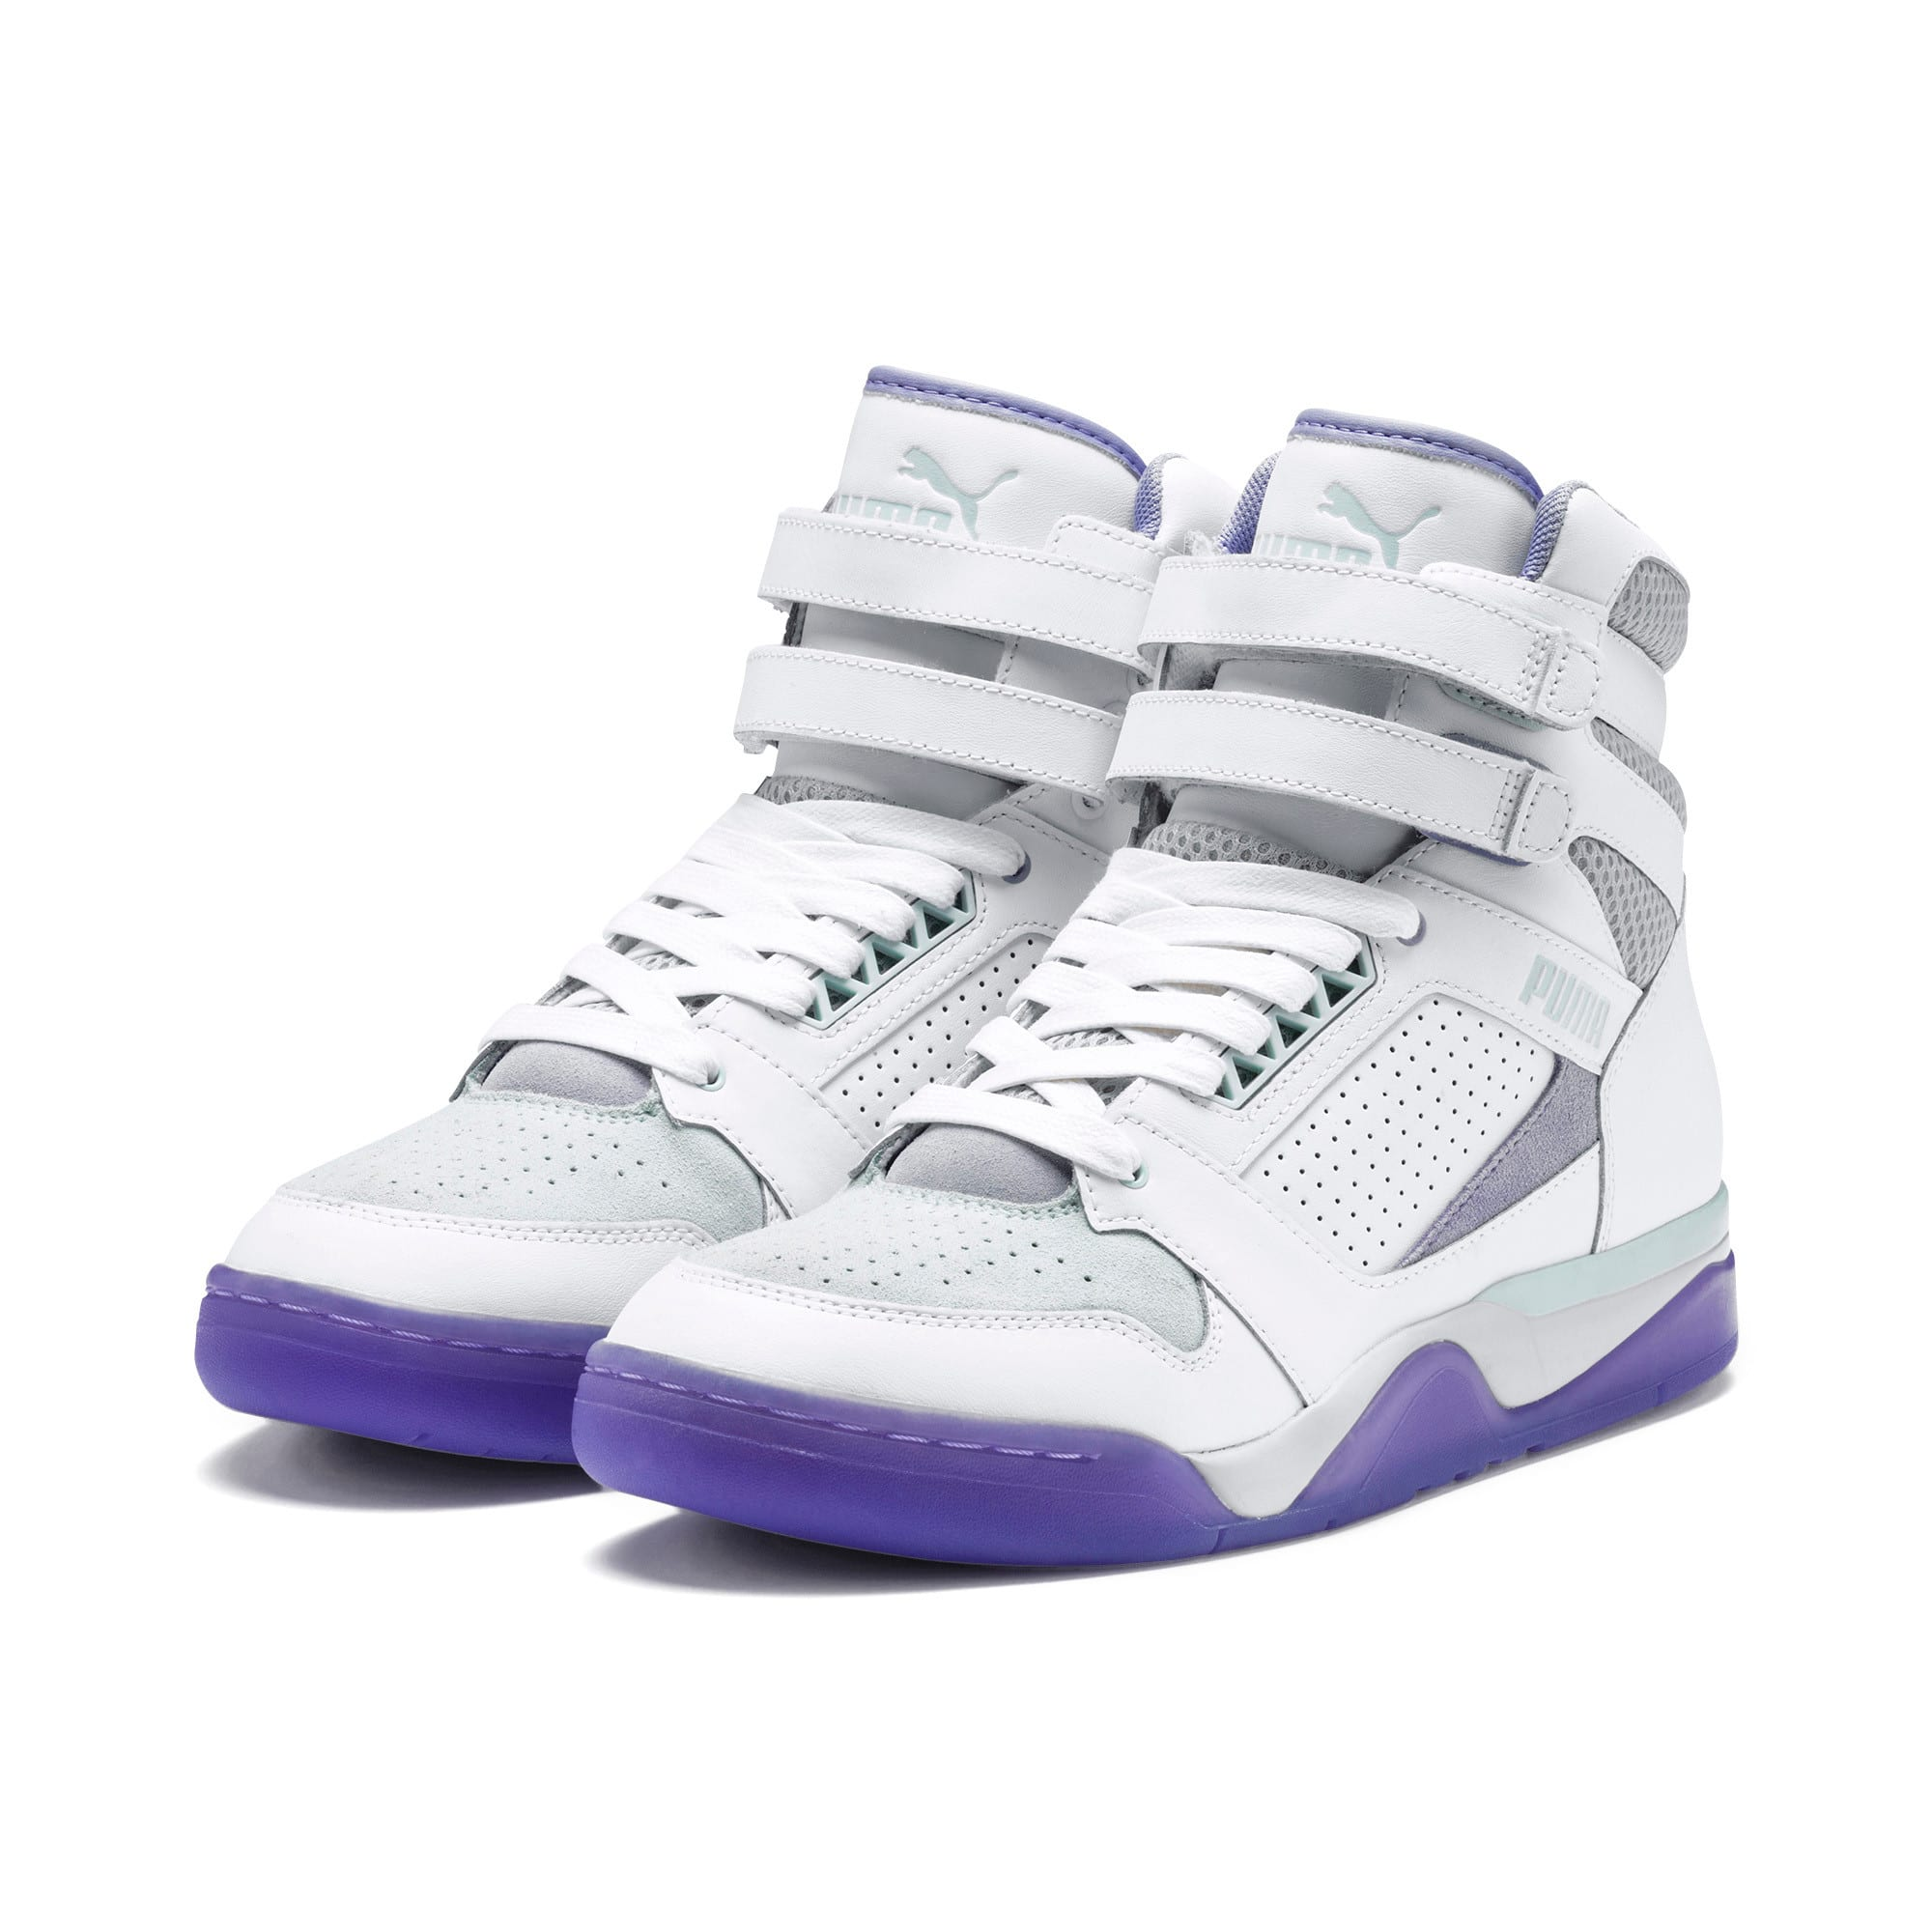 Thumbnail 2 of Palace Guard Mid Easter Sneakers, PWht-Dandelion-Prism Violet, medium